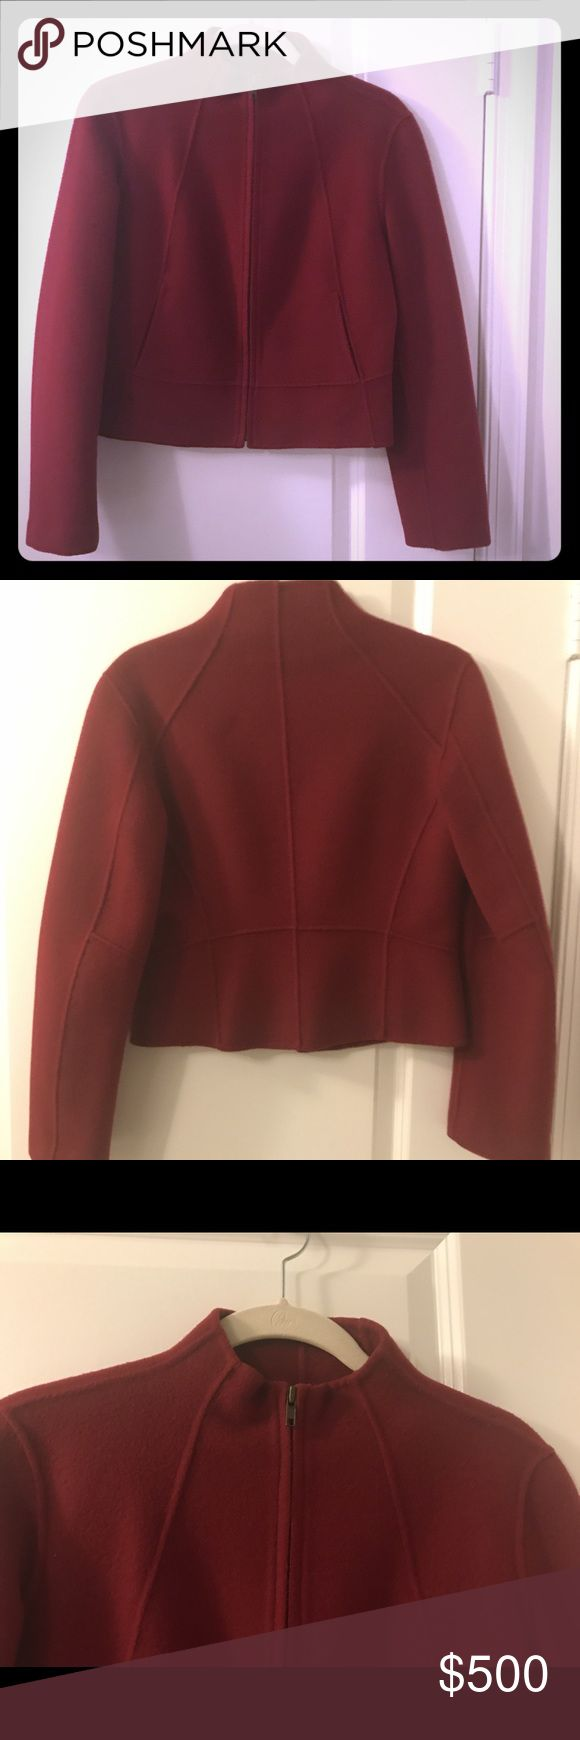 Donna Karan Couture Jacket. Deep ruby red exquisite Donna Karan wool jacket. Front zip with two flat front pockets. Beautiful piping adds great structure. Wear as a suit jacket with trousers or a skirt OR with jeans or leather pants or skirt. Very versatile and fashionable. Enjoy!! Donna Karan Jackets & Coats